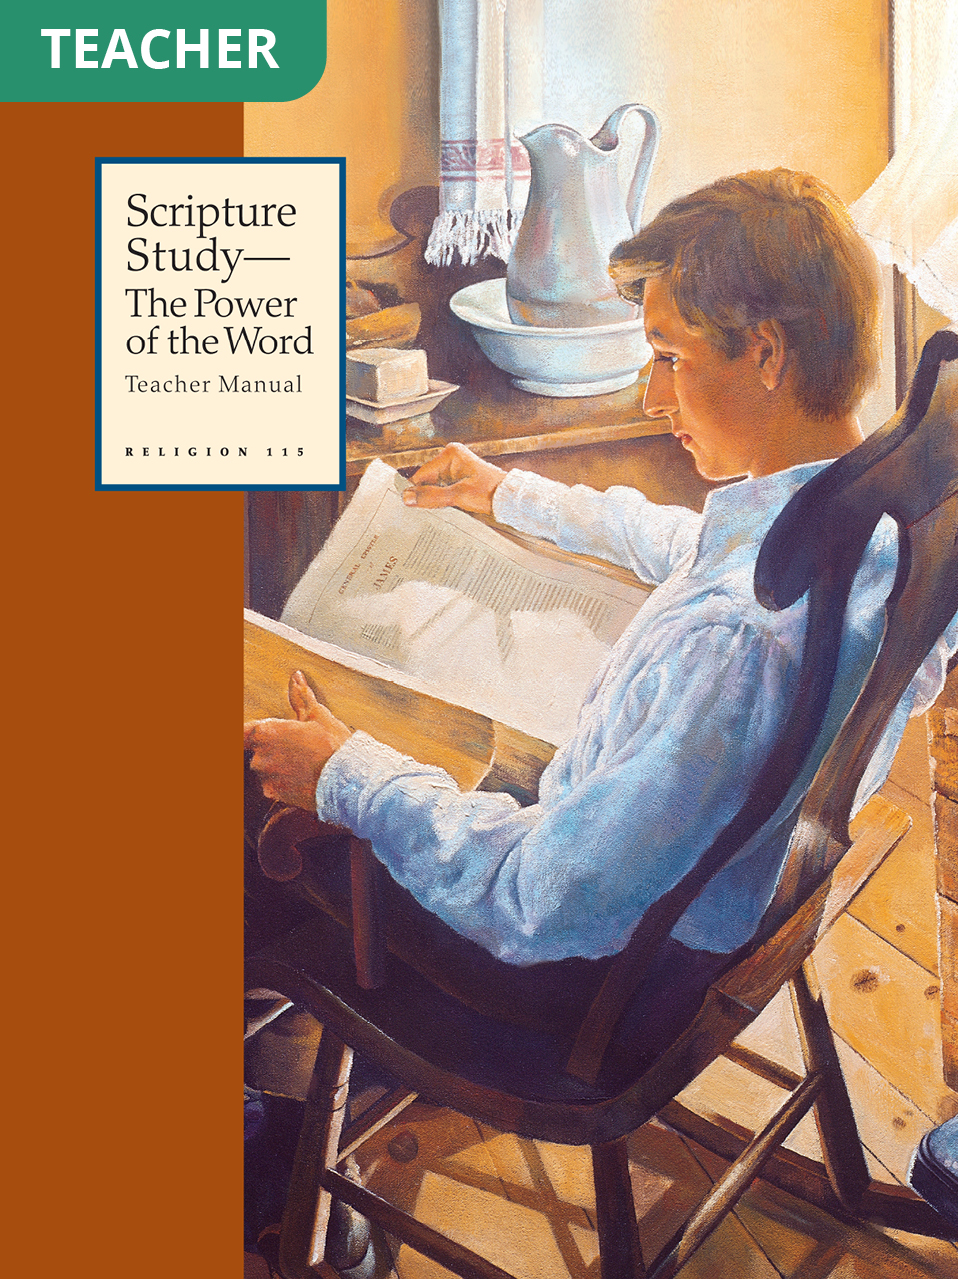 Scripture Study—The Power of the Word Teacher Manual (Rel 115)